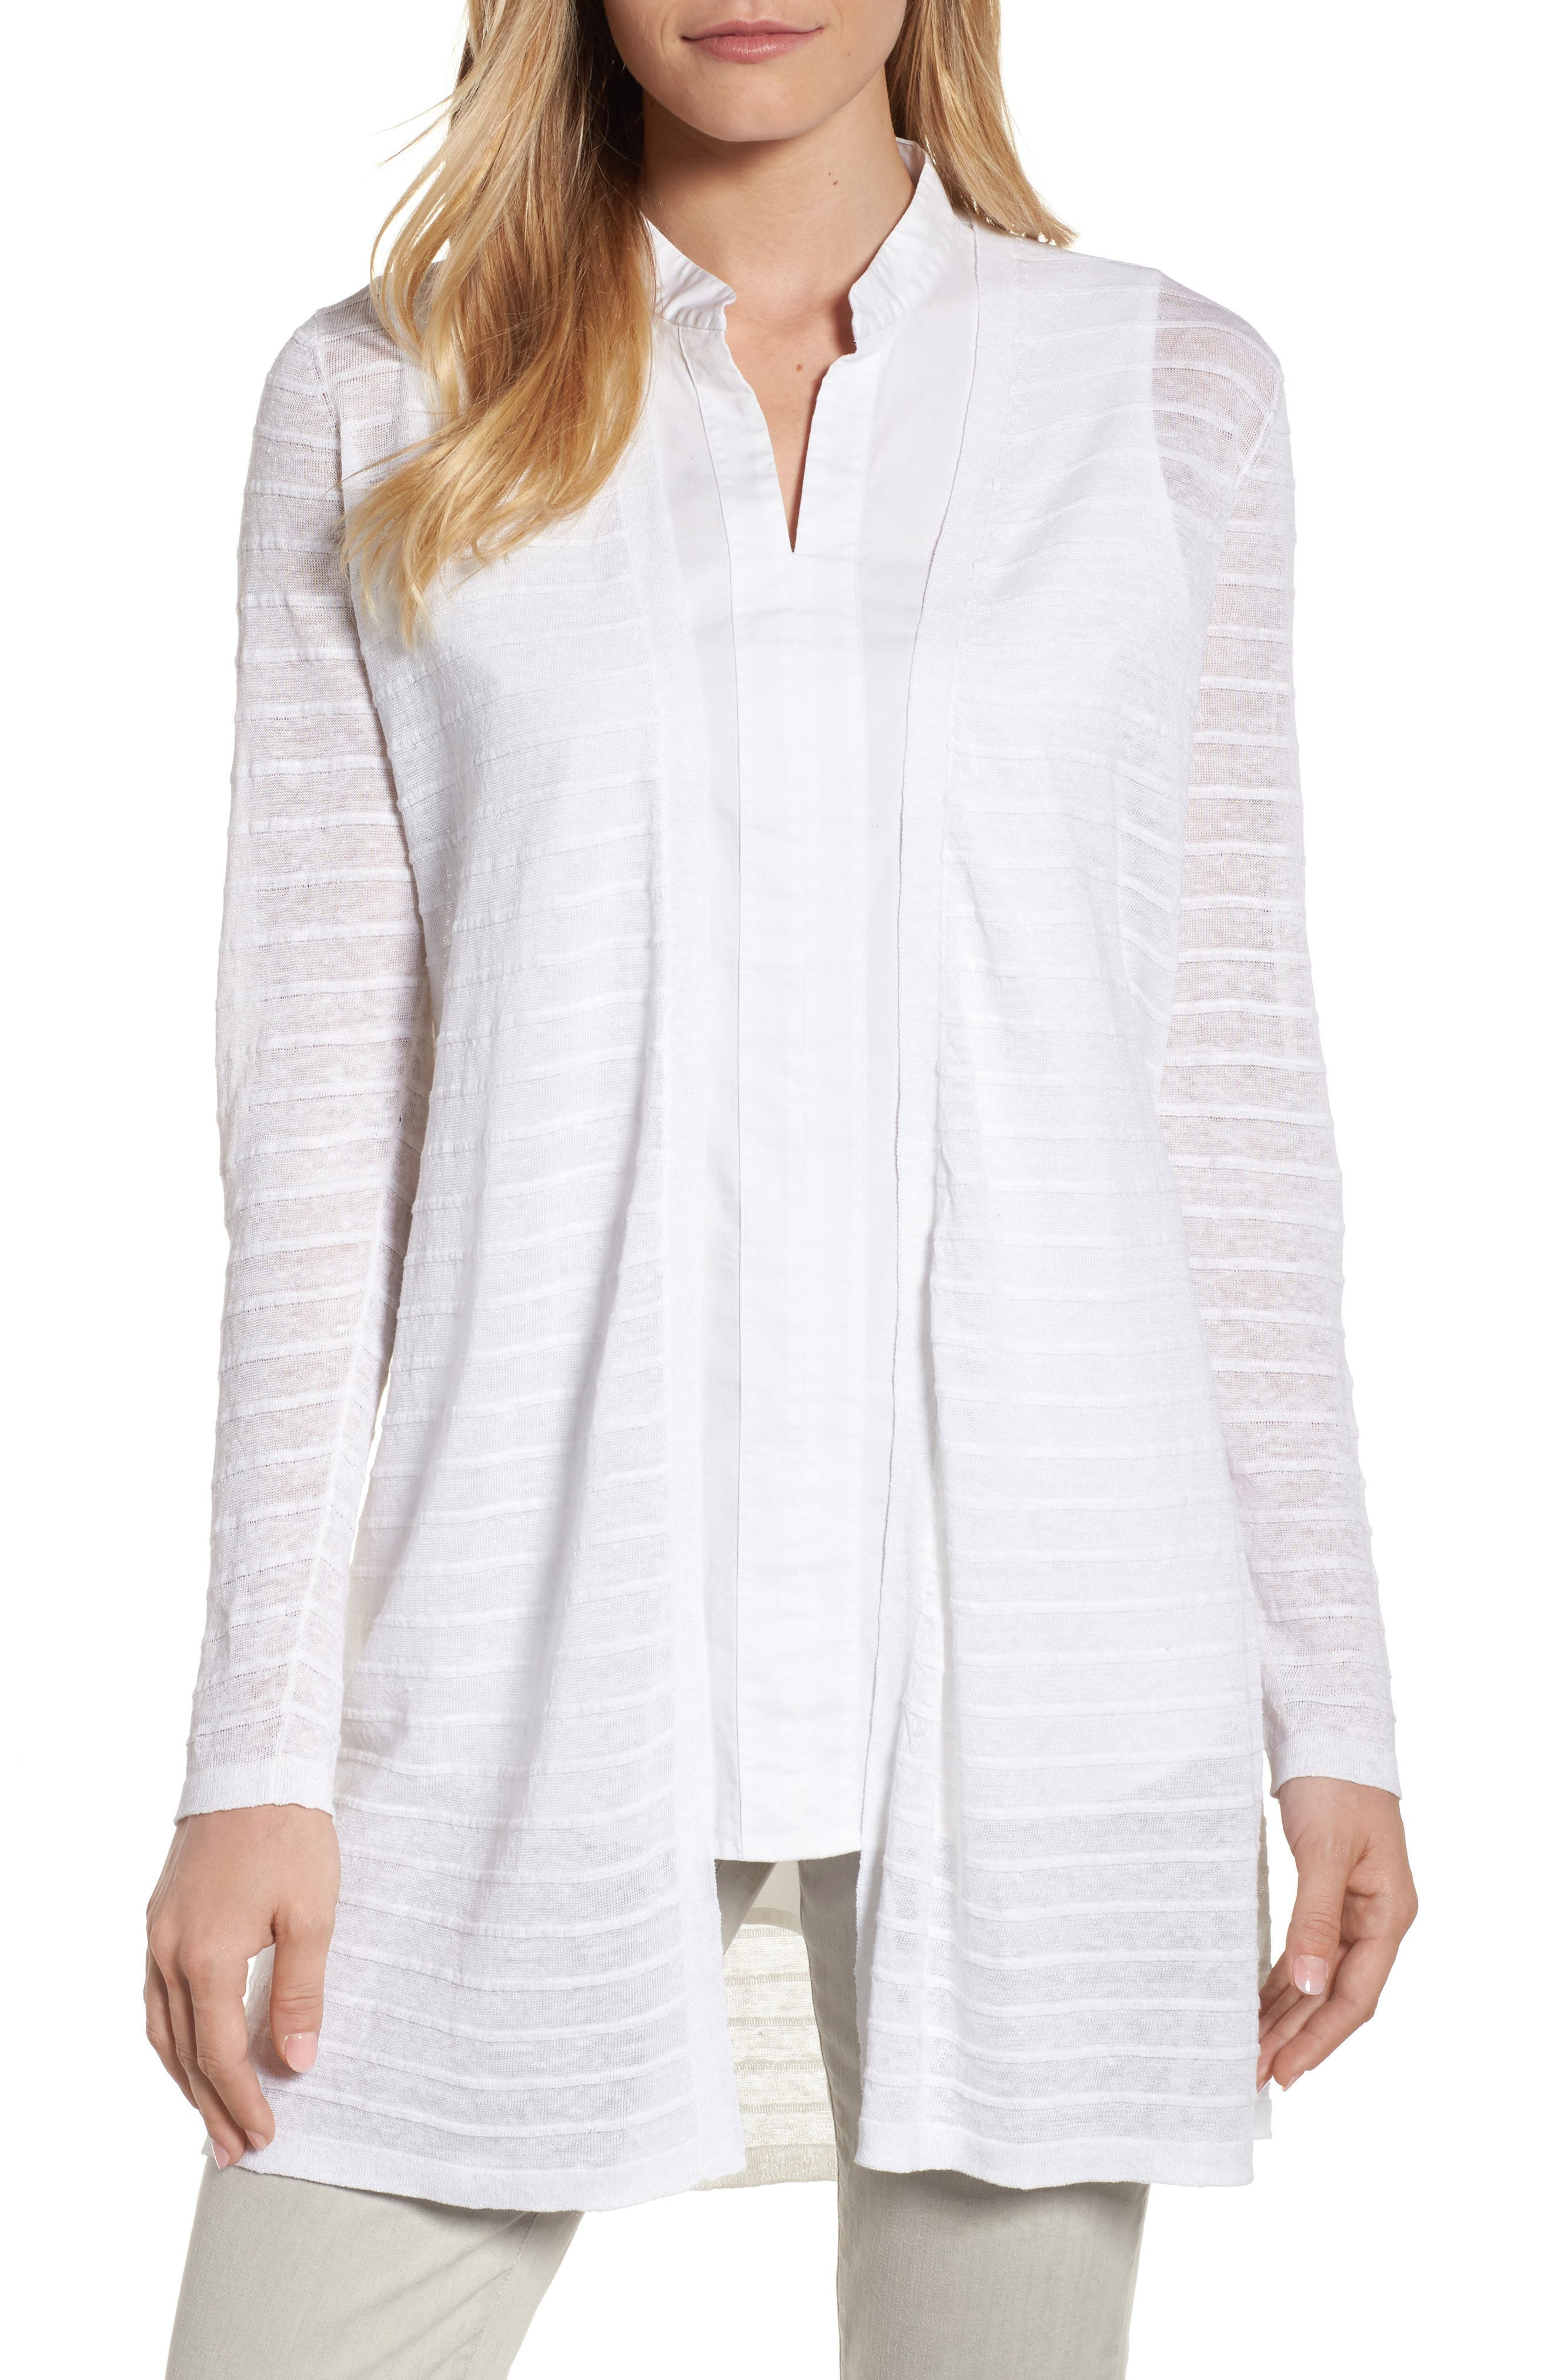 Alternate Image 1 Selected - Eileen Fisher Long Organic Linen Blend Jacquard Cardigan